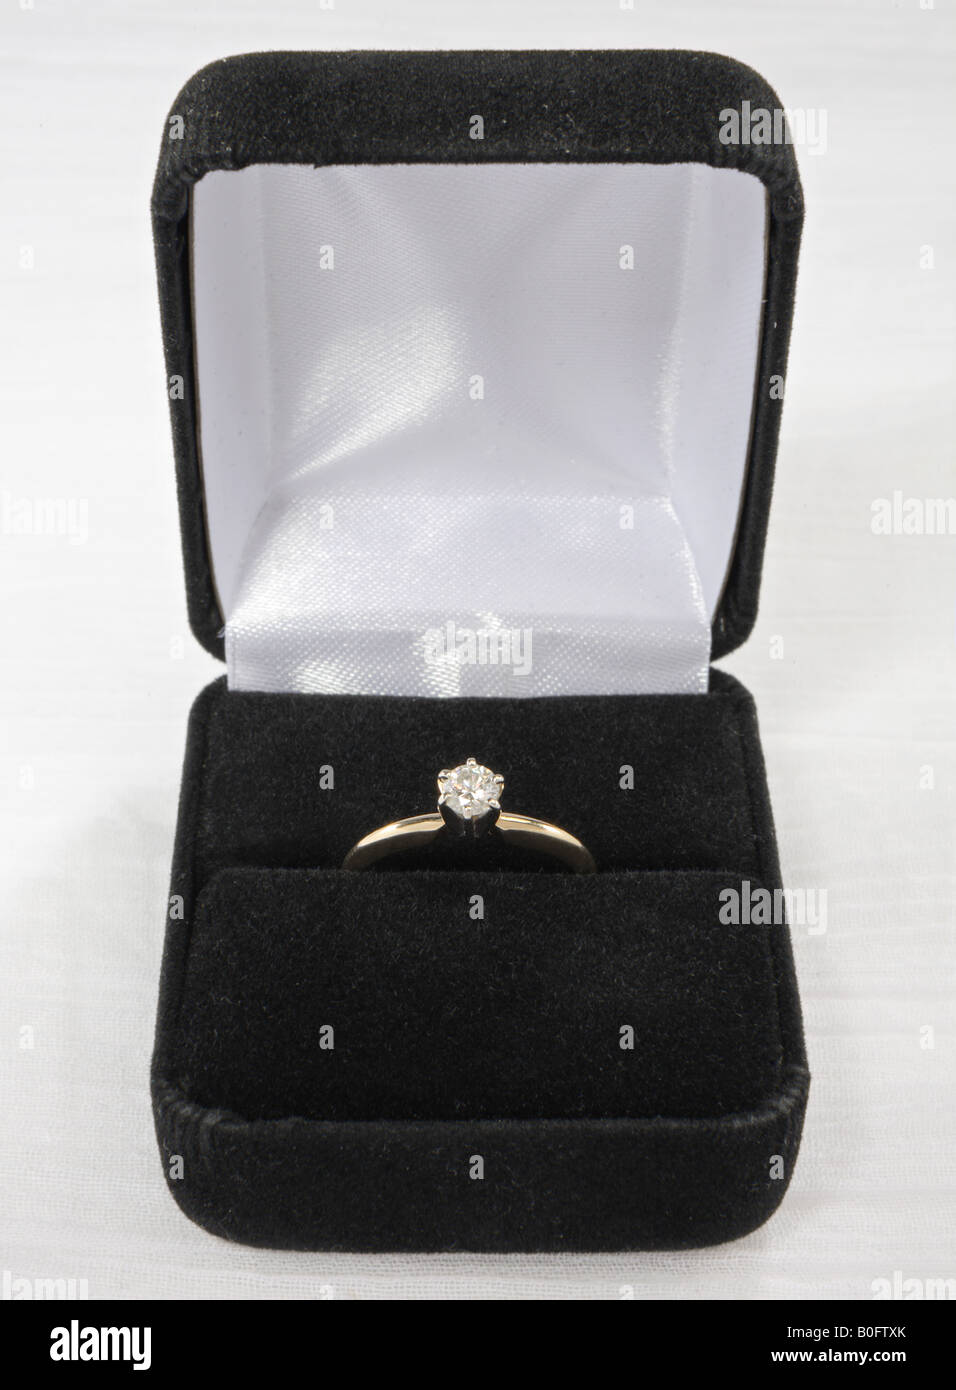 diamond solitaire ring in box - Stock Image